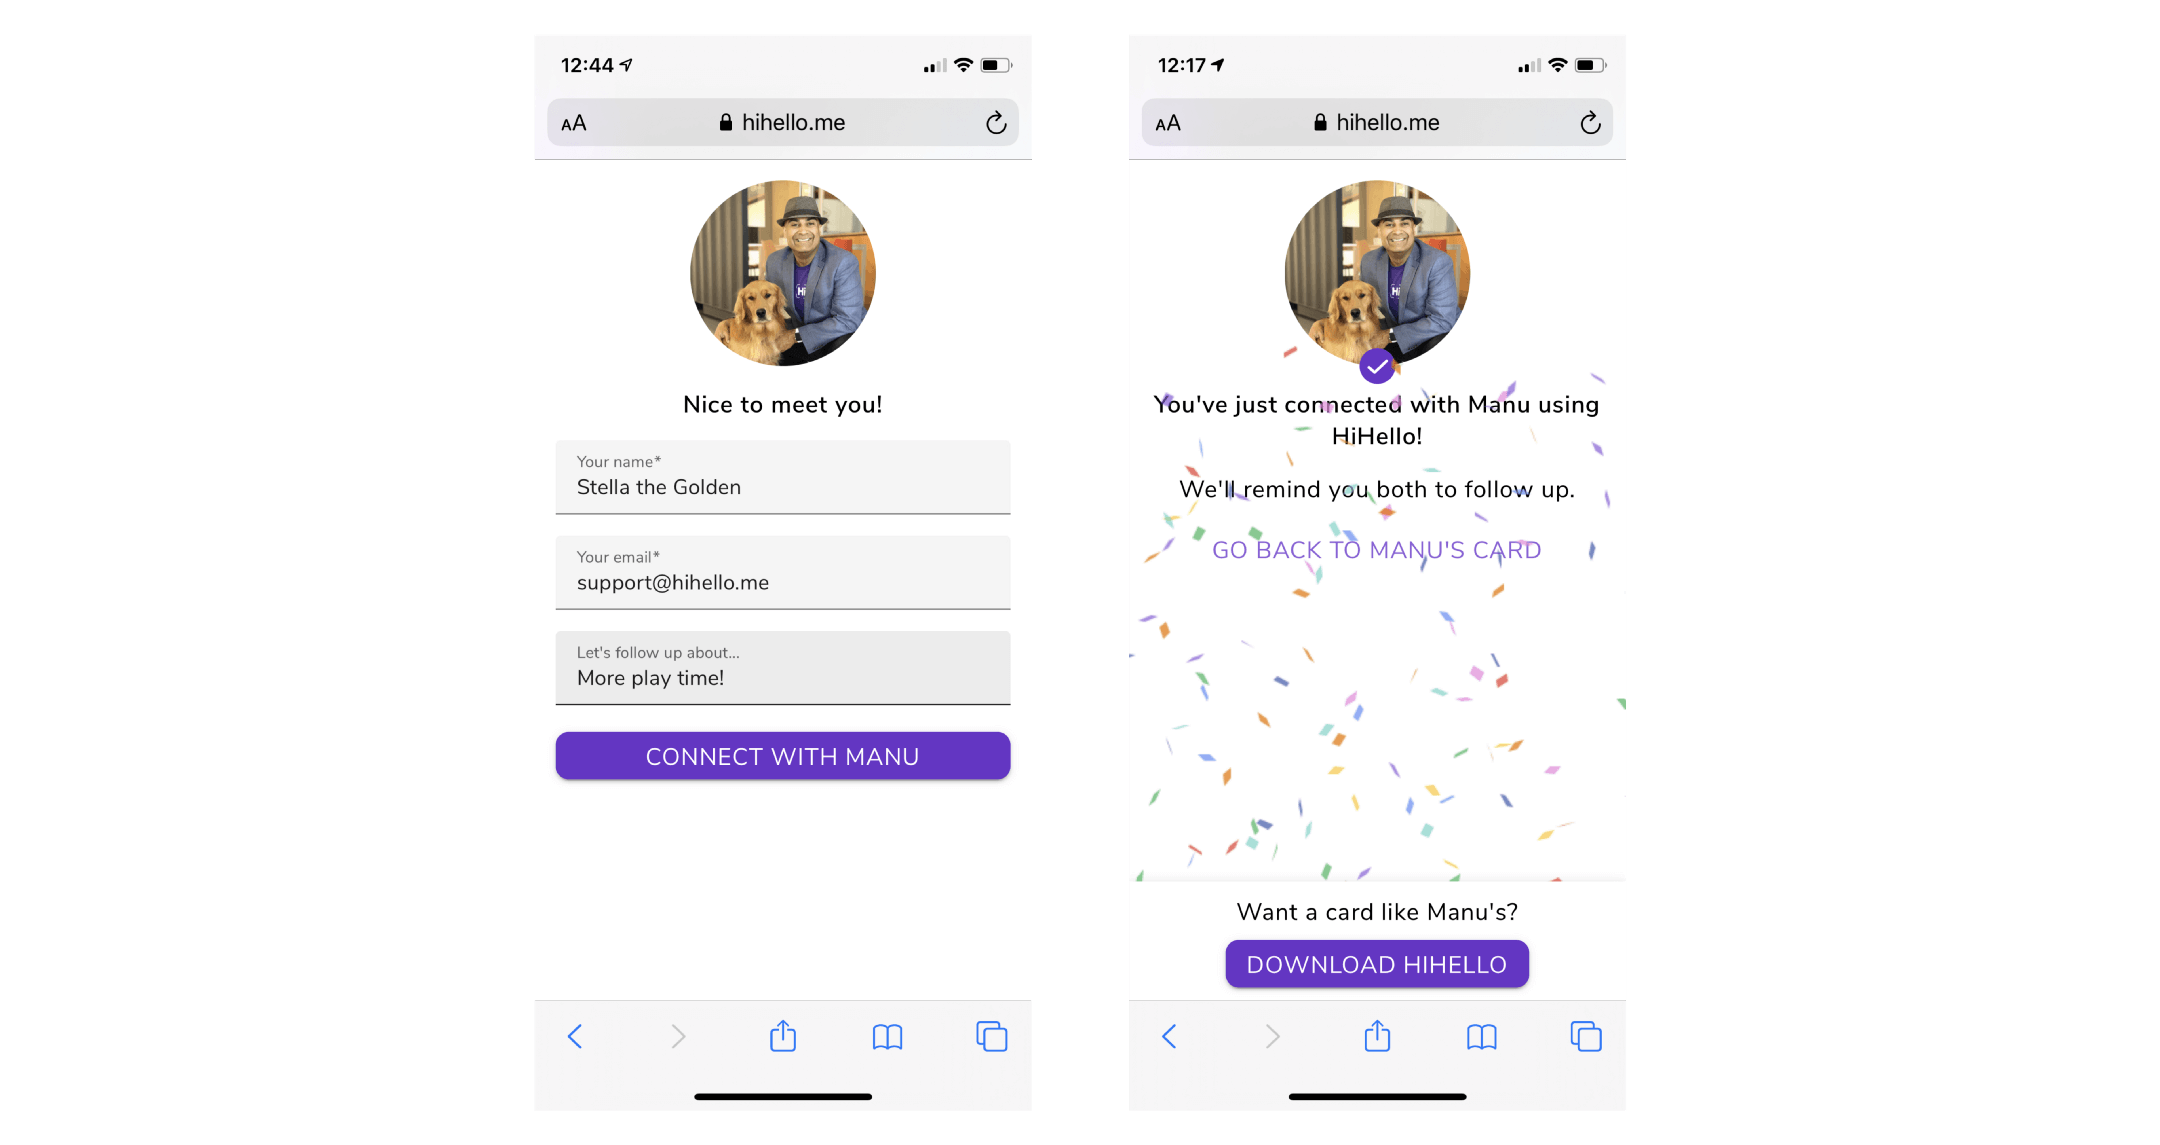 Sending a digital business card to someone